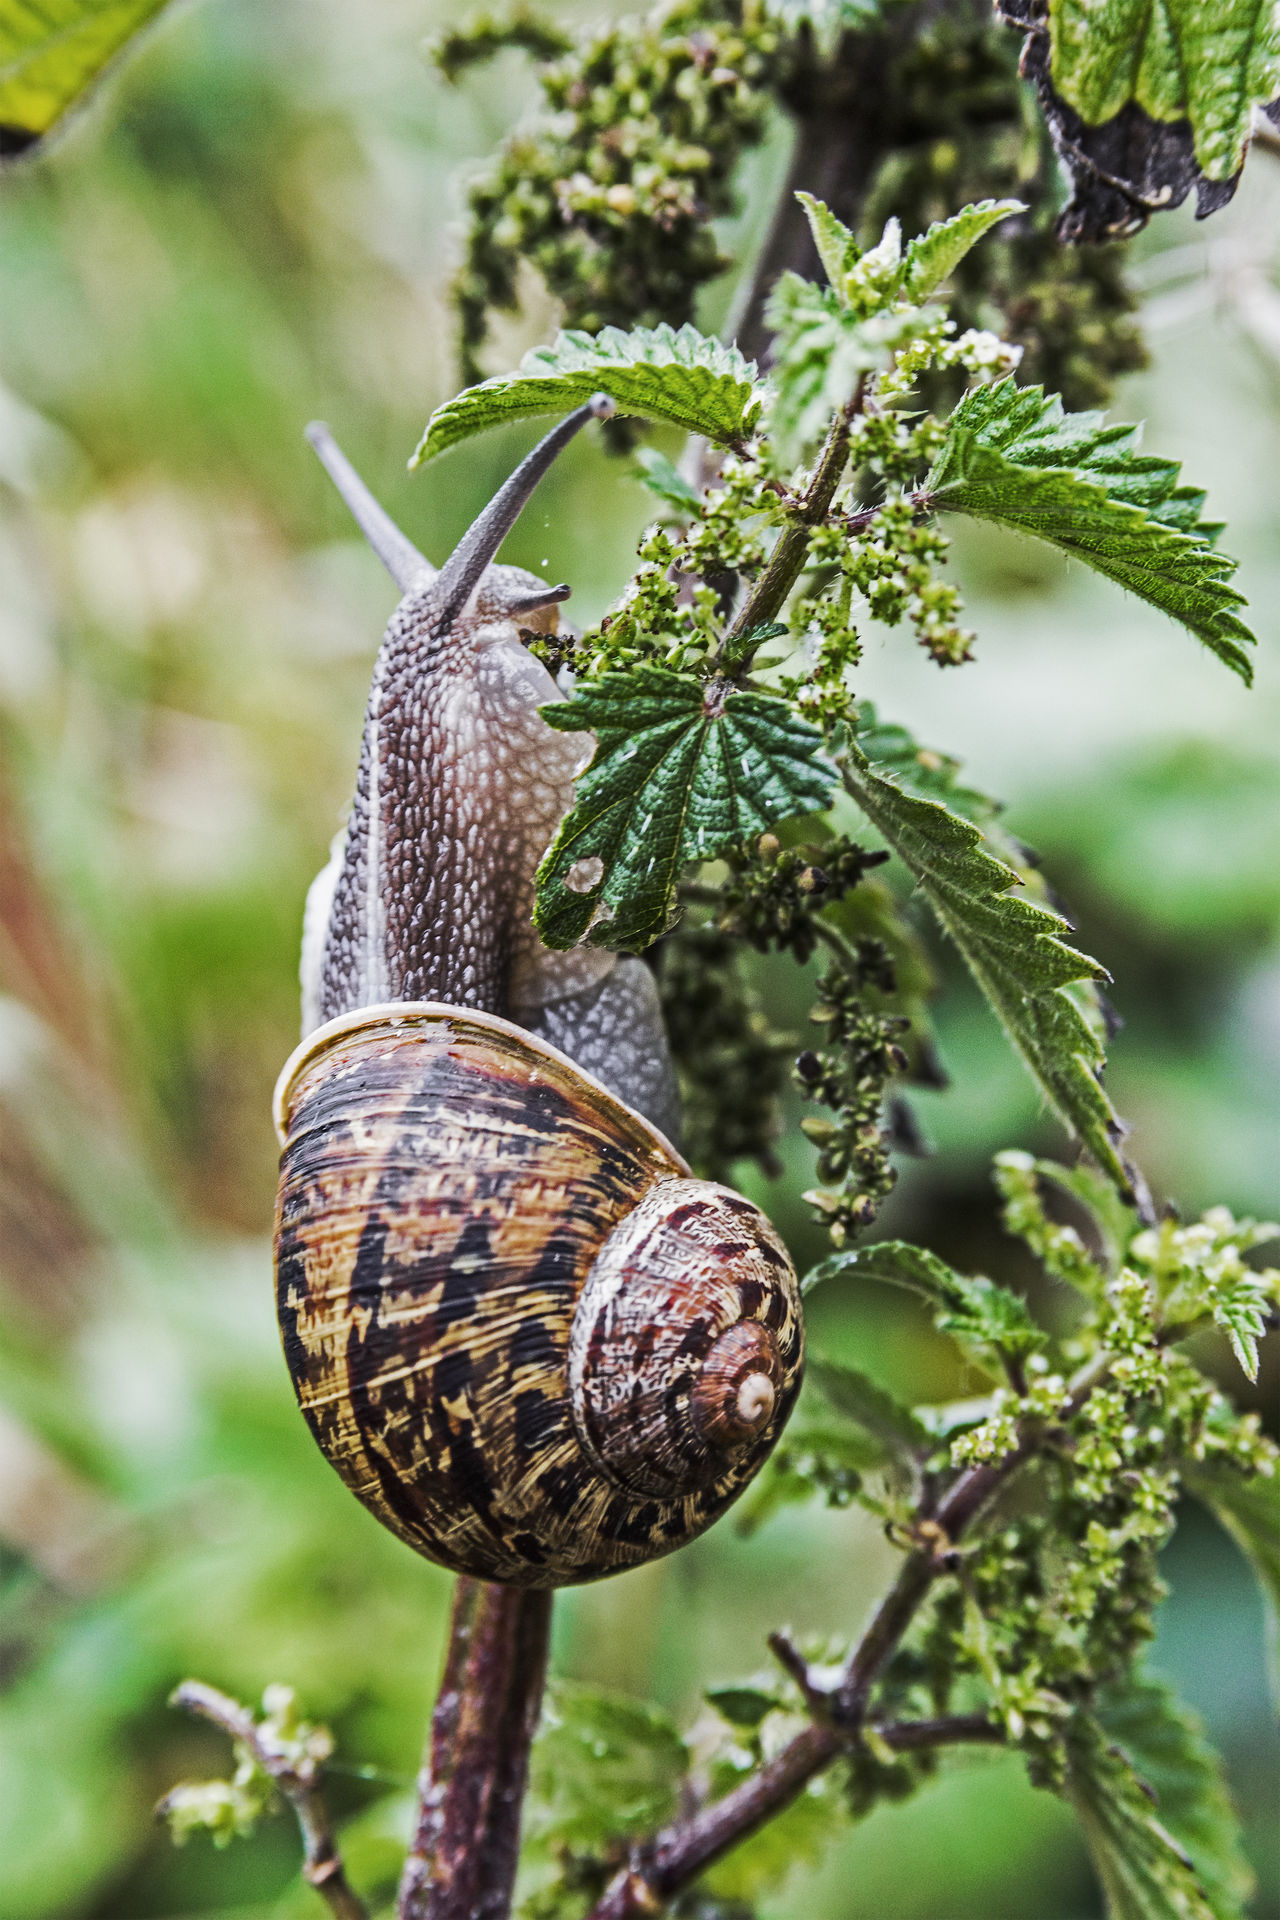 Garden snail, Helix aspera, on foliage. Close-up Coiled Shell Garden Gastropod Gastropoda Helix Aspersa Herbivorous Landscape Mollusc One Animal Pest Plant Eating Pulmonate Shell Snail Terrestrial